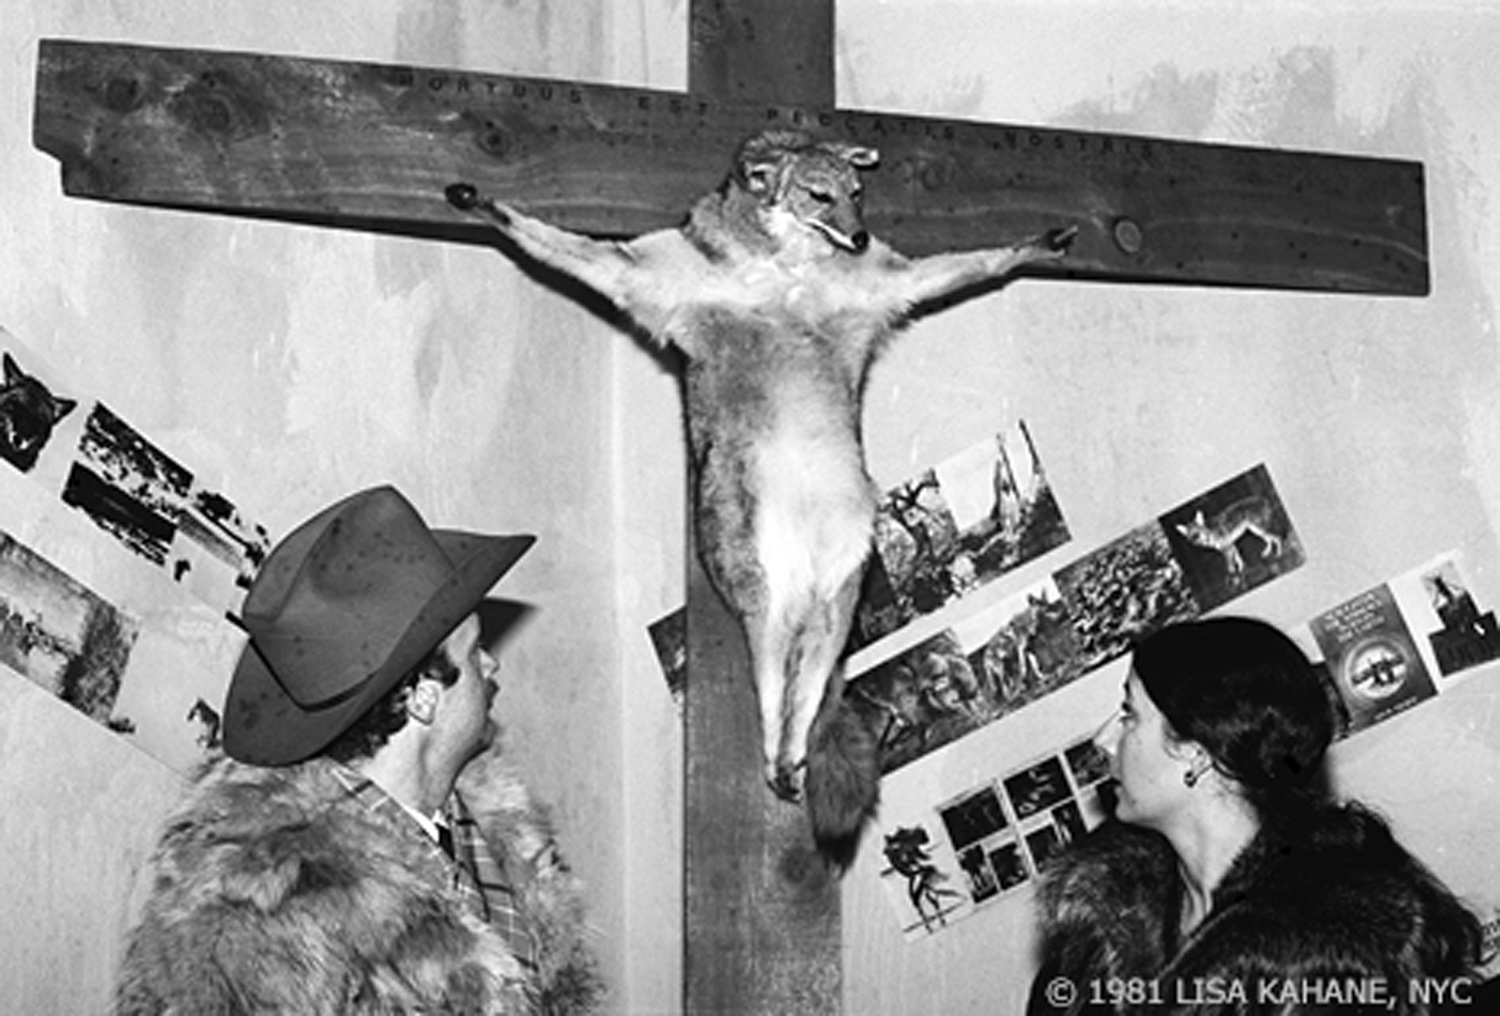 Paulette Nenner,  Crucified Coyote . Nenner's work occasioned public controversy when NYC Parks Commissioner Gordon Davis orded it removed from the Aniamls in Arsenal exhibition in the Central Park Zoo. Photo by Lisa Kahane